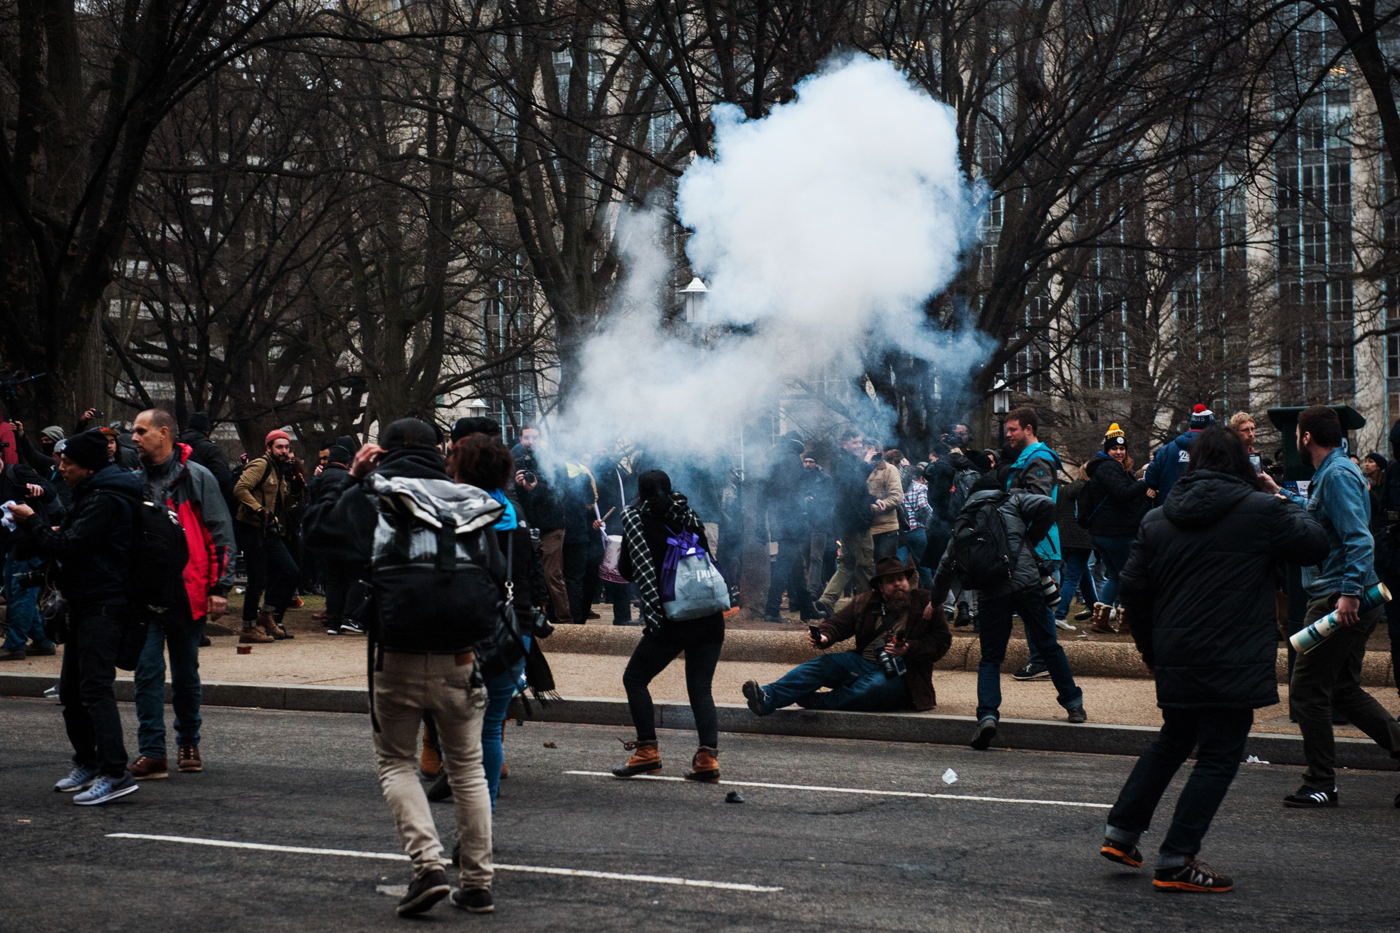 People react to a flash bang grenade fired by D.C. Metropolitan Police Officers during protests against Donald Trump's inauguration as the 45th President of the United States in Washington, D.C., on January 20, 2017. Credit: Mark Kauzlarich for CNN